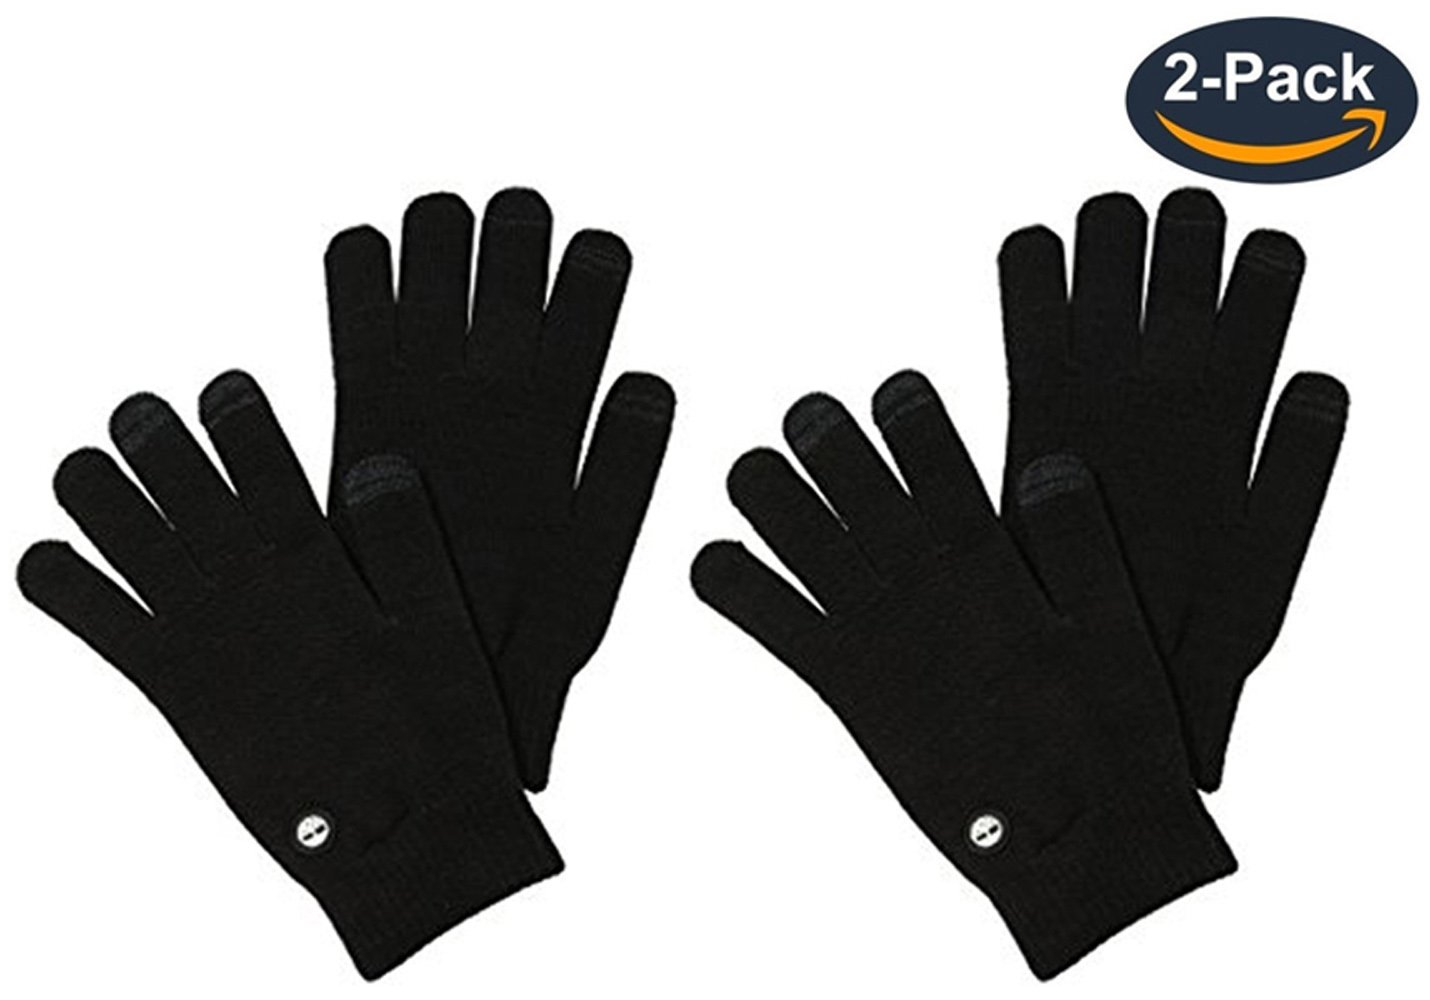 2 Pack:Timberland Men's Magic Glove with Touchscreen Technology, Black, One Size